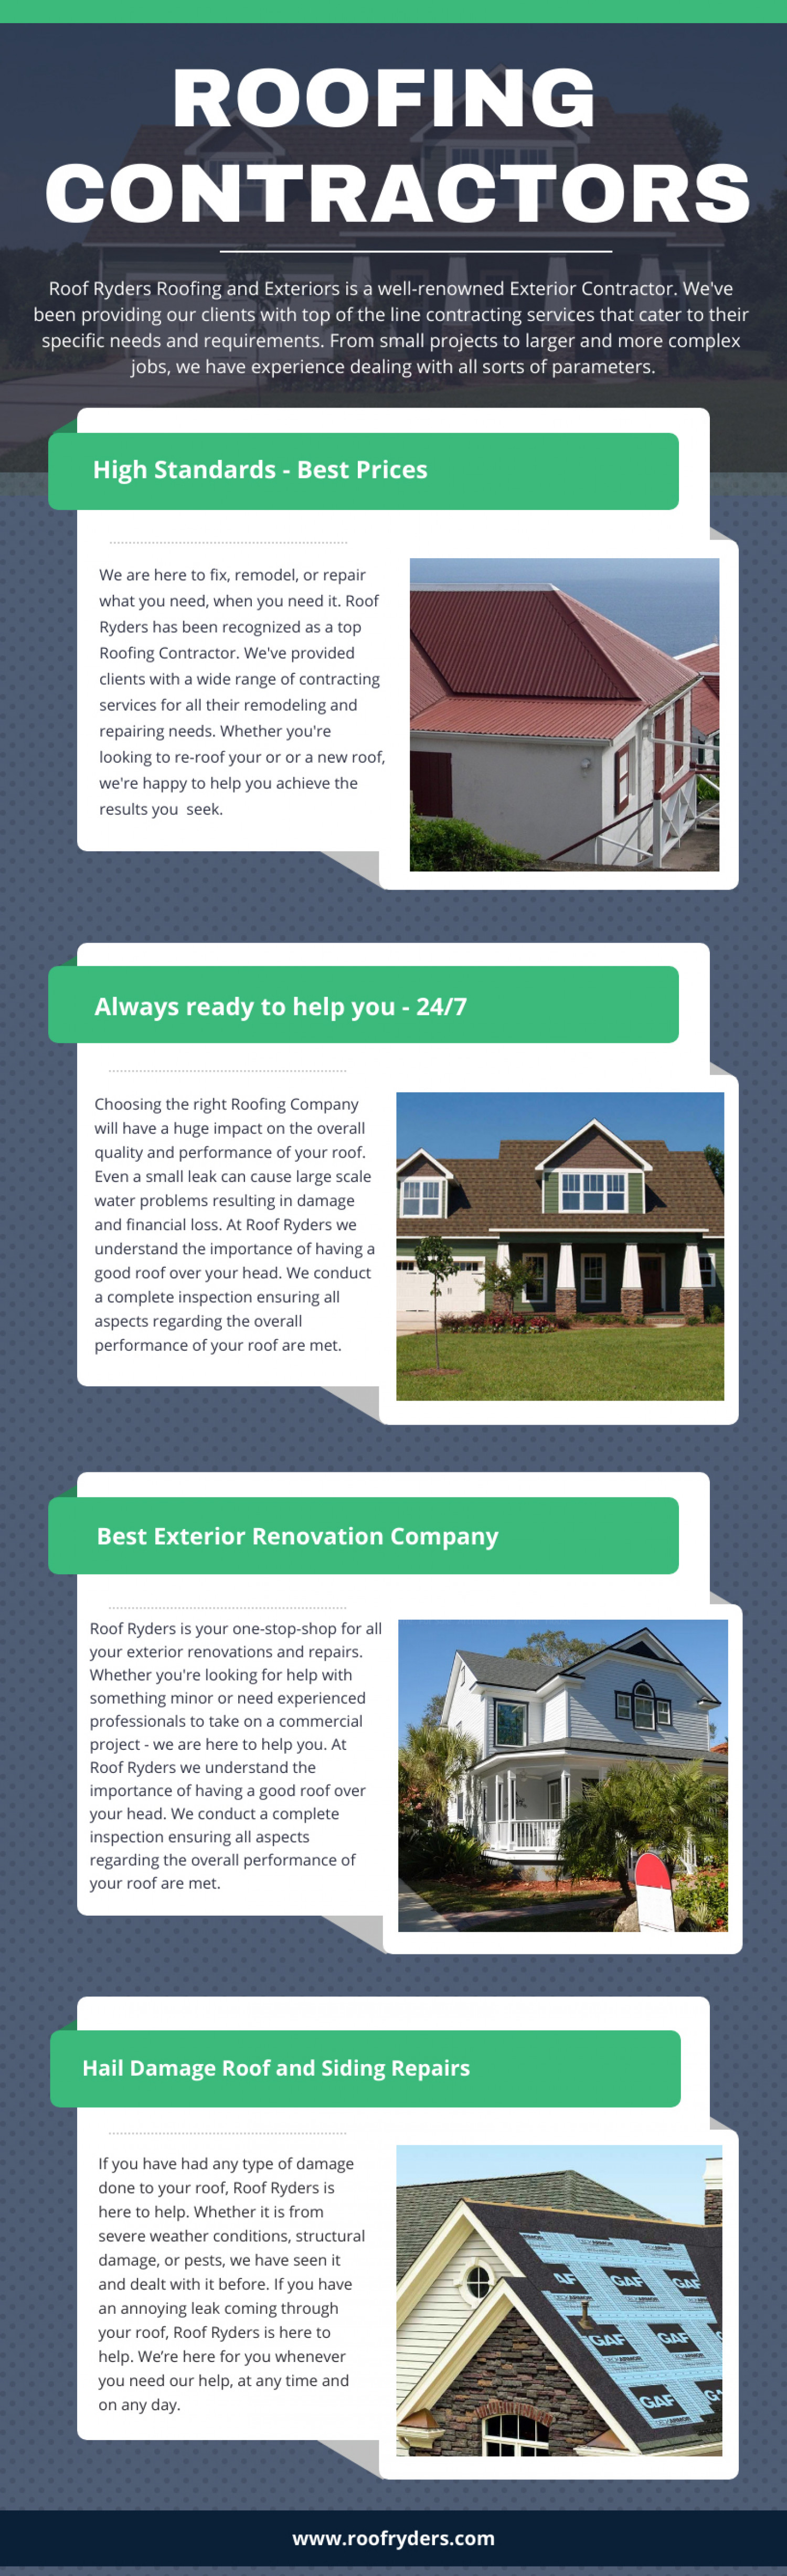 Roofing Contractors Infographic